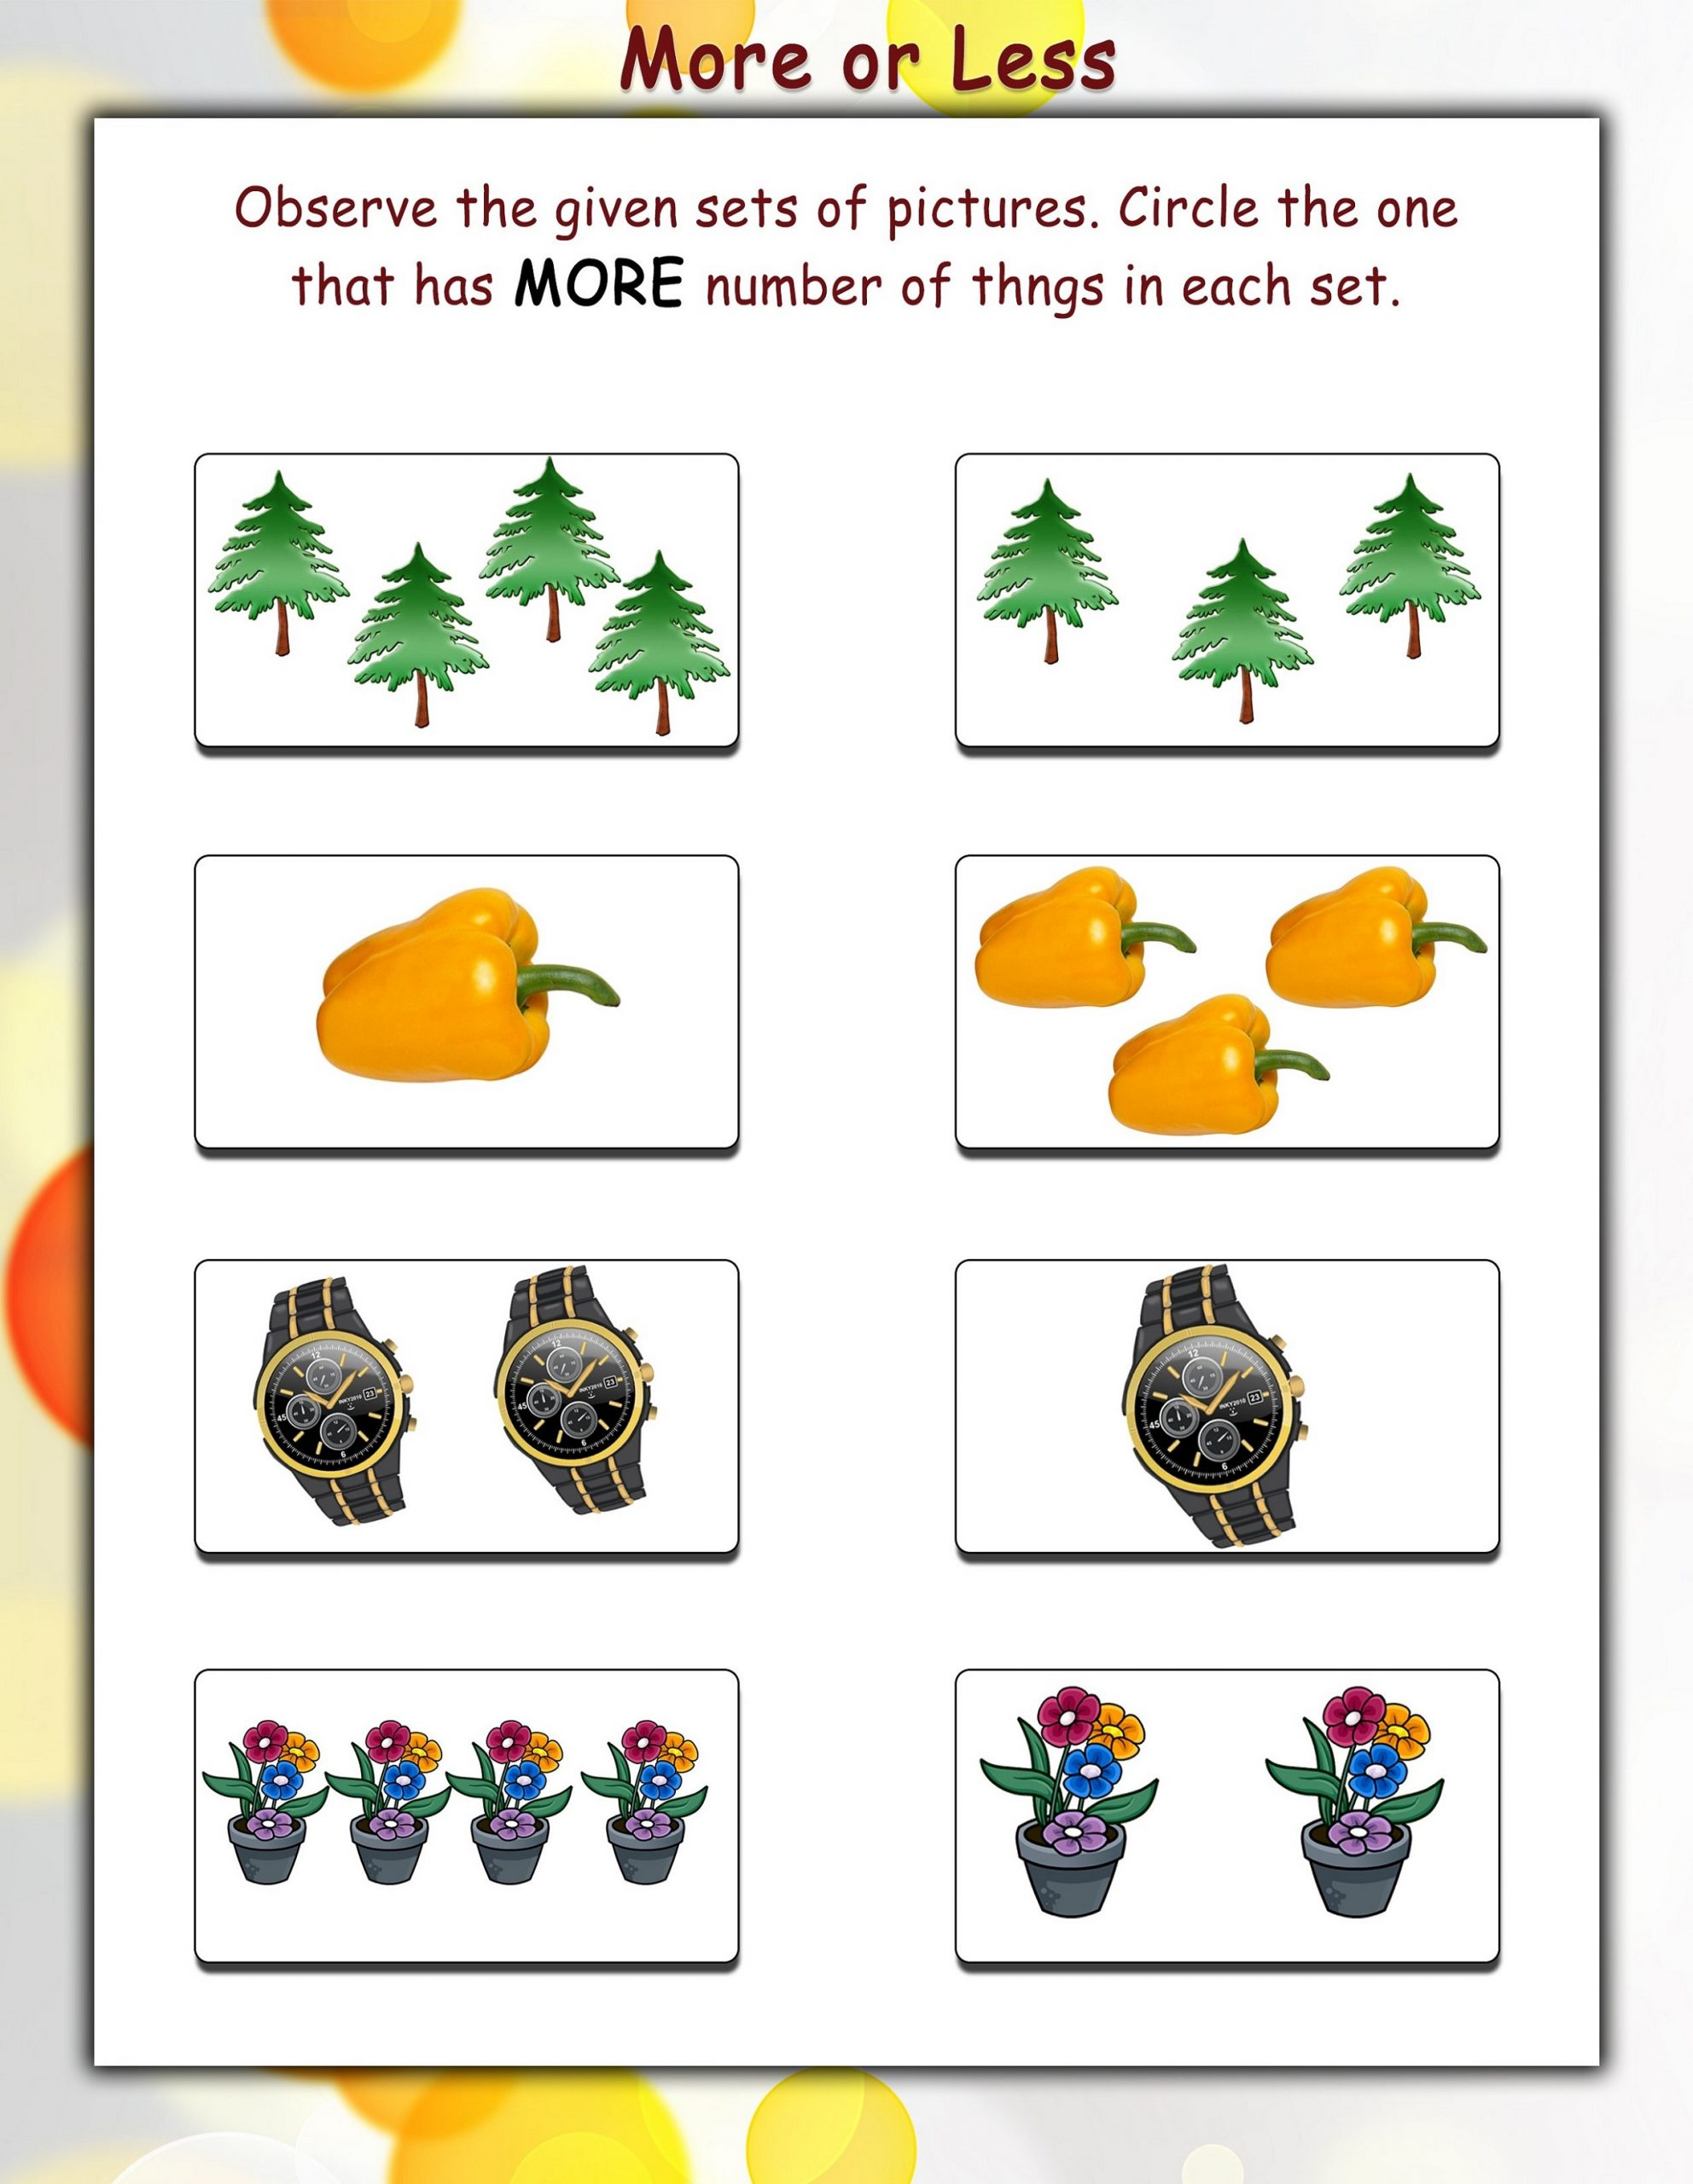 More Less Worksheets Printable